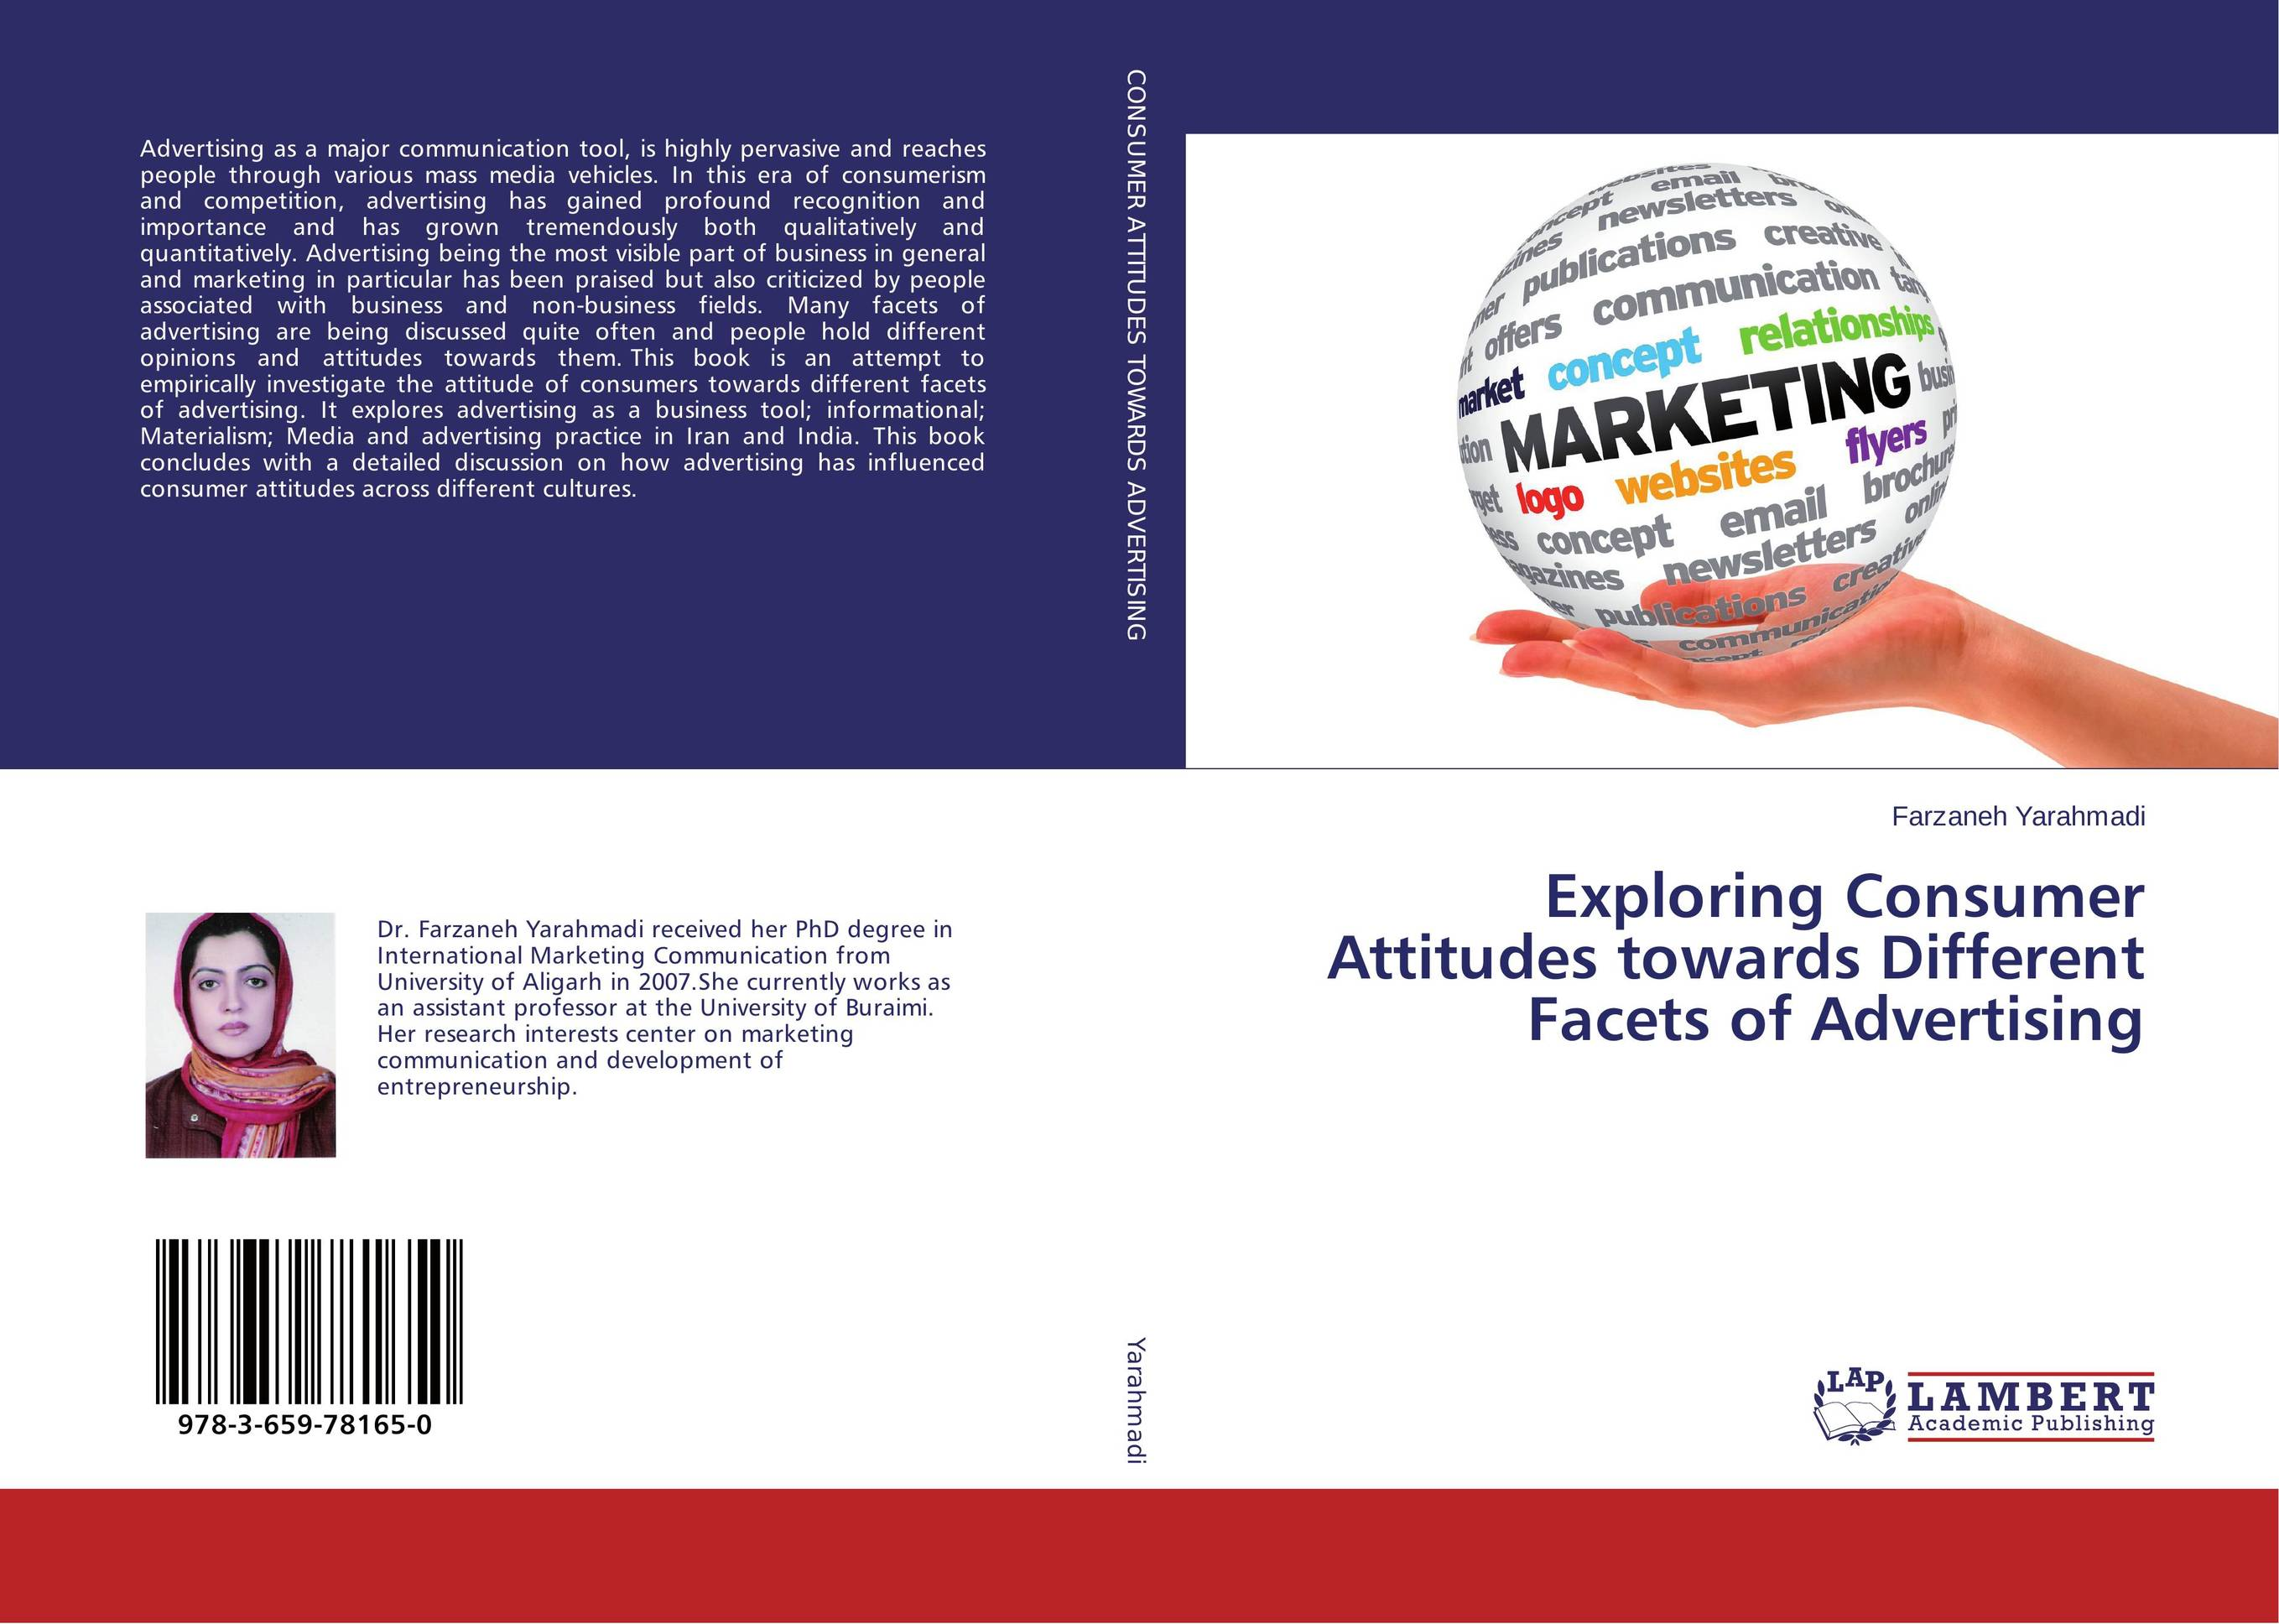 Exploring Consumer Attitudes towards Different Facets of Advertising